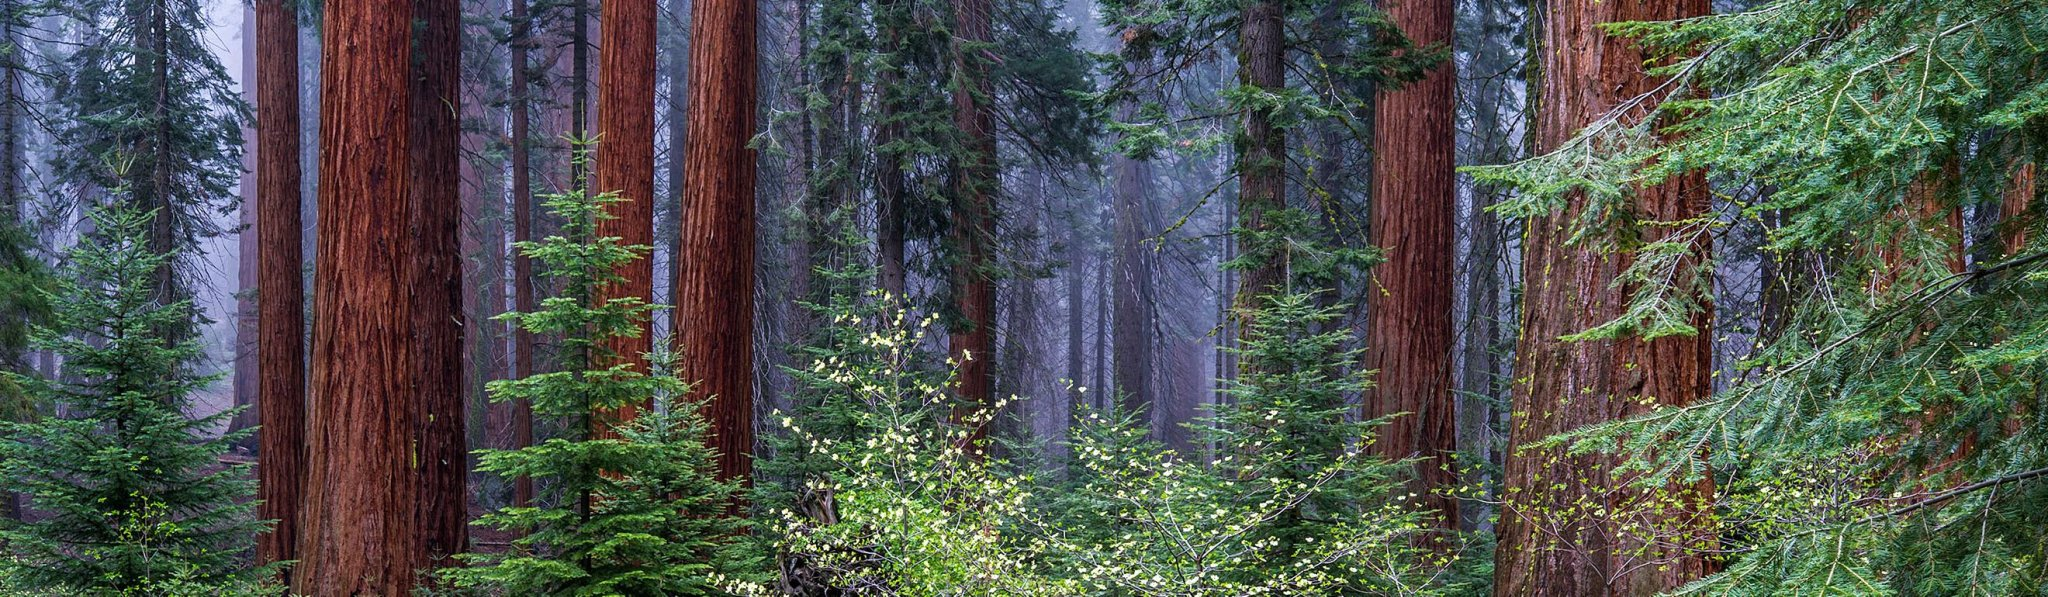 Sequoia Kings Canyon National Parks (U.S. National Park Service)